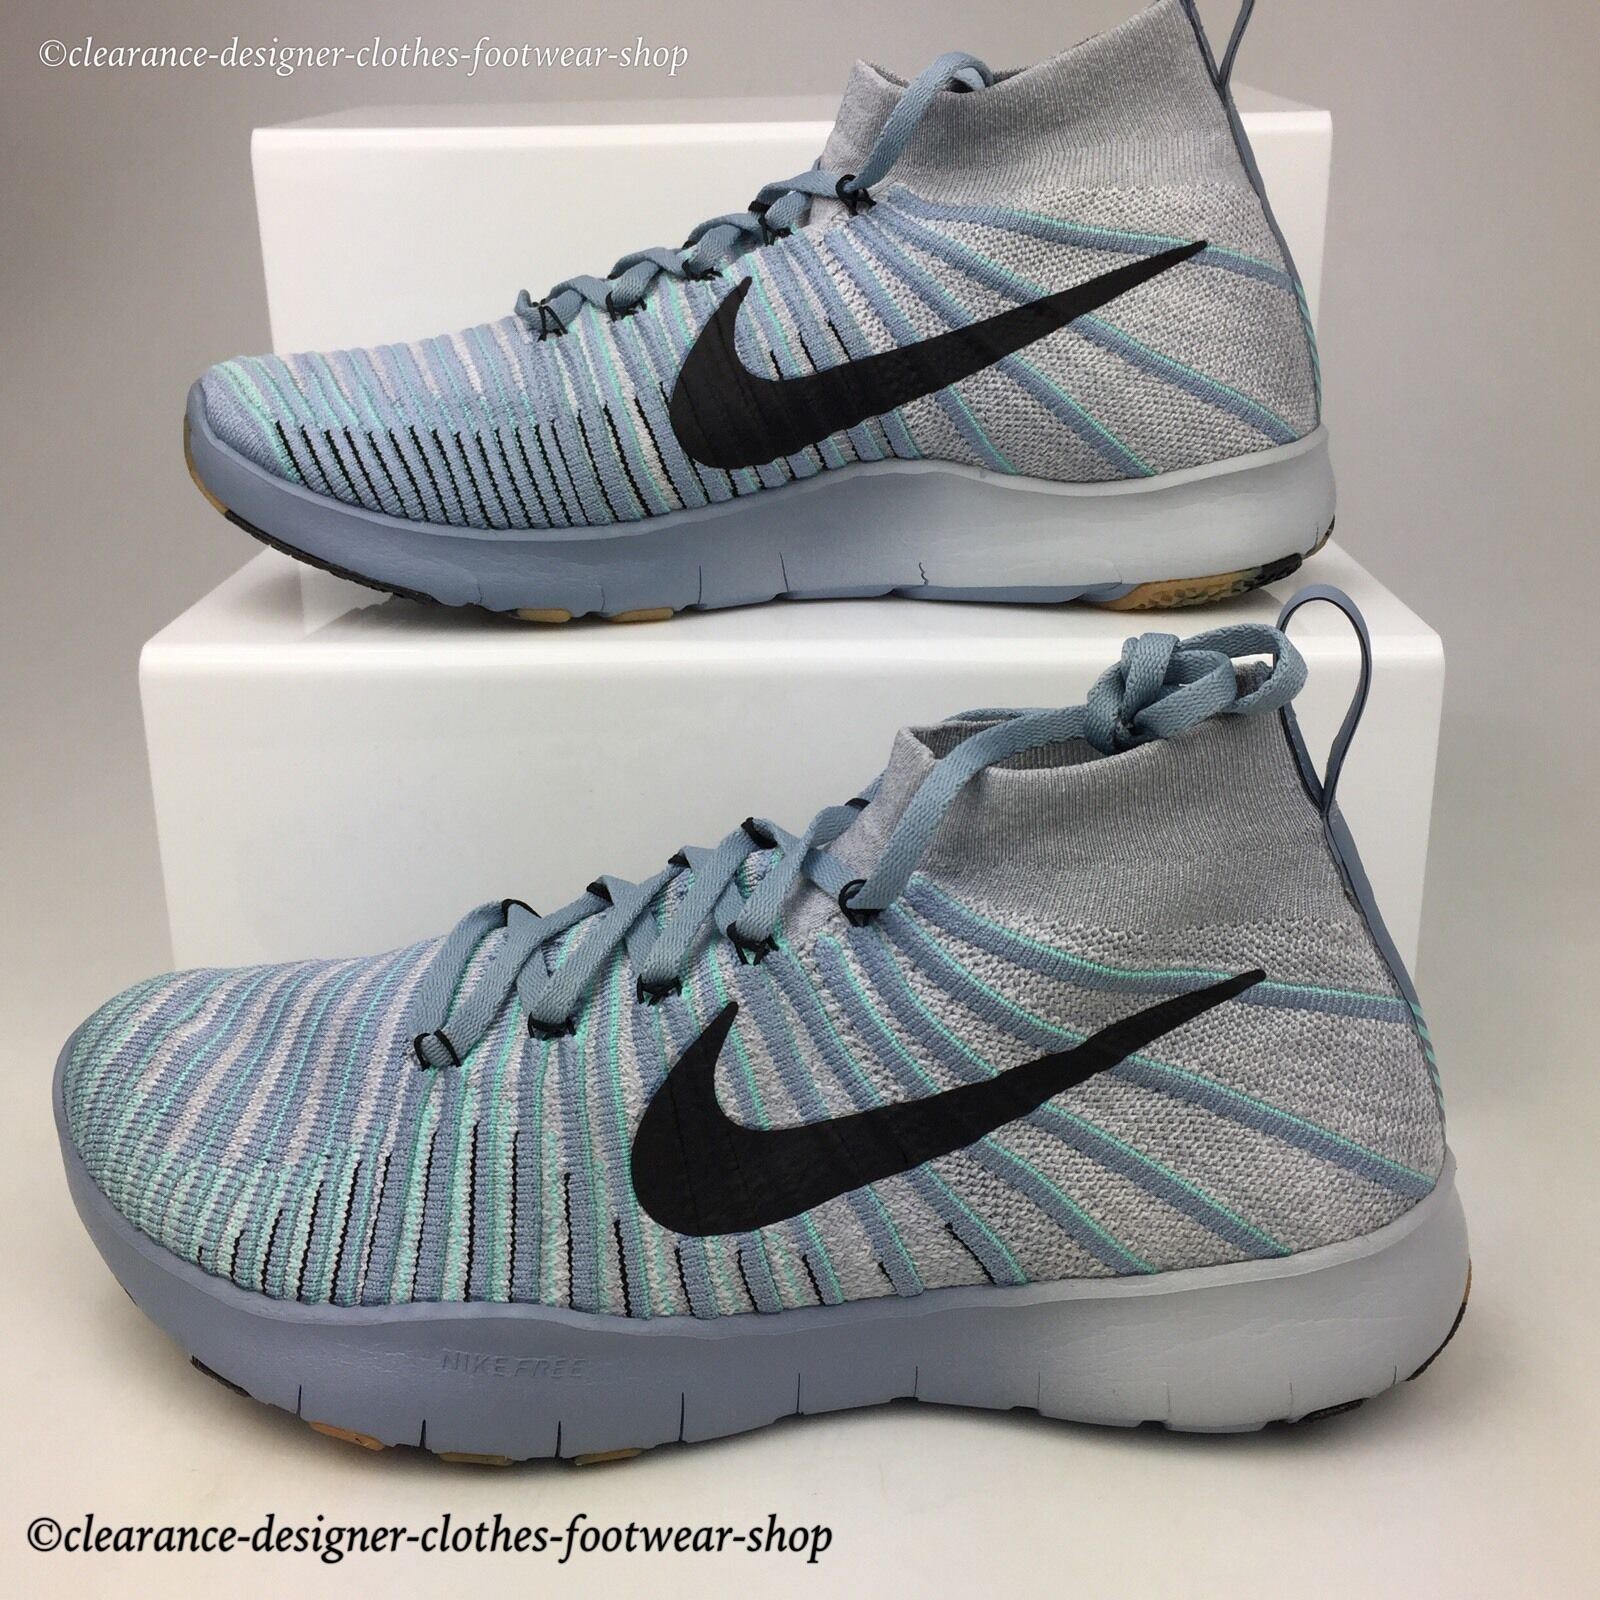 the best attitude e9f7a 12a17 NIKE NIKE NIKE FREE TRAIN FORCE FLYKNIT TRAINERS MENS NEW RUNNING GYM SHOES  RRP 8e4d3d